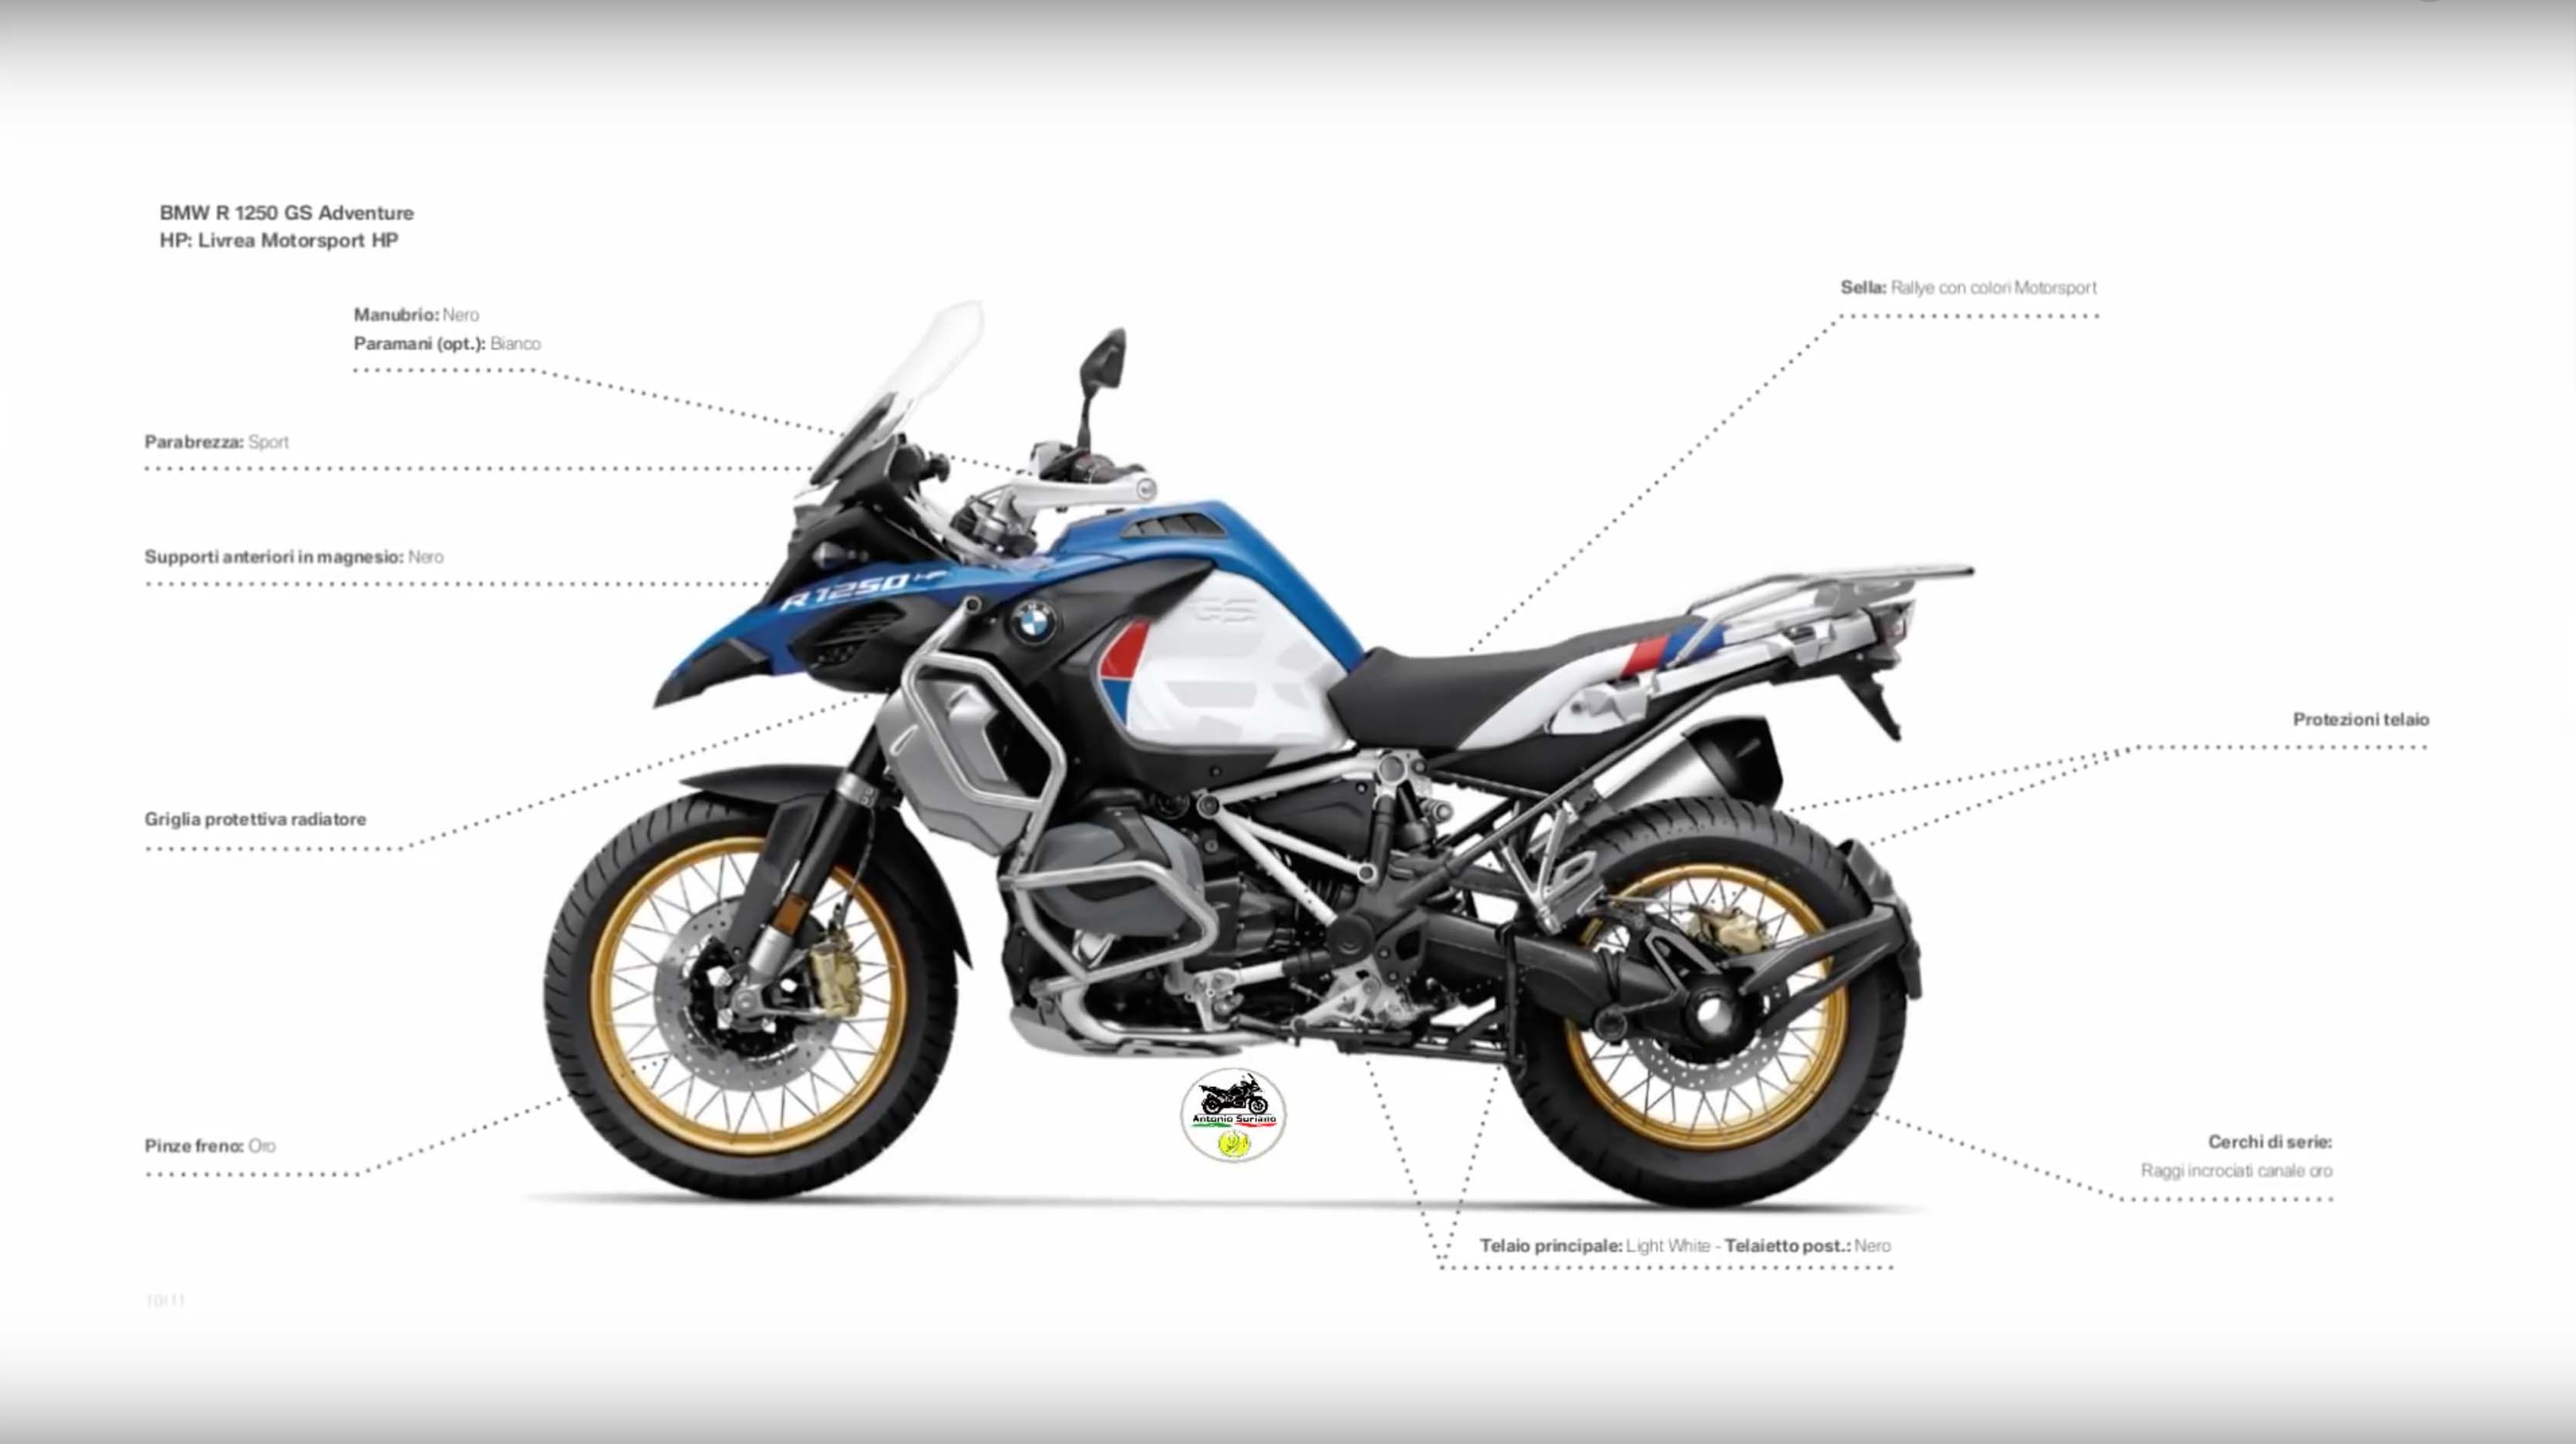 Leaked Photos And Details Of The 2019 Bmw R1250gs Adventure